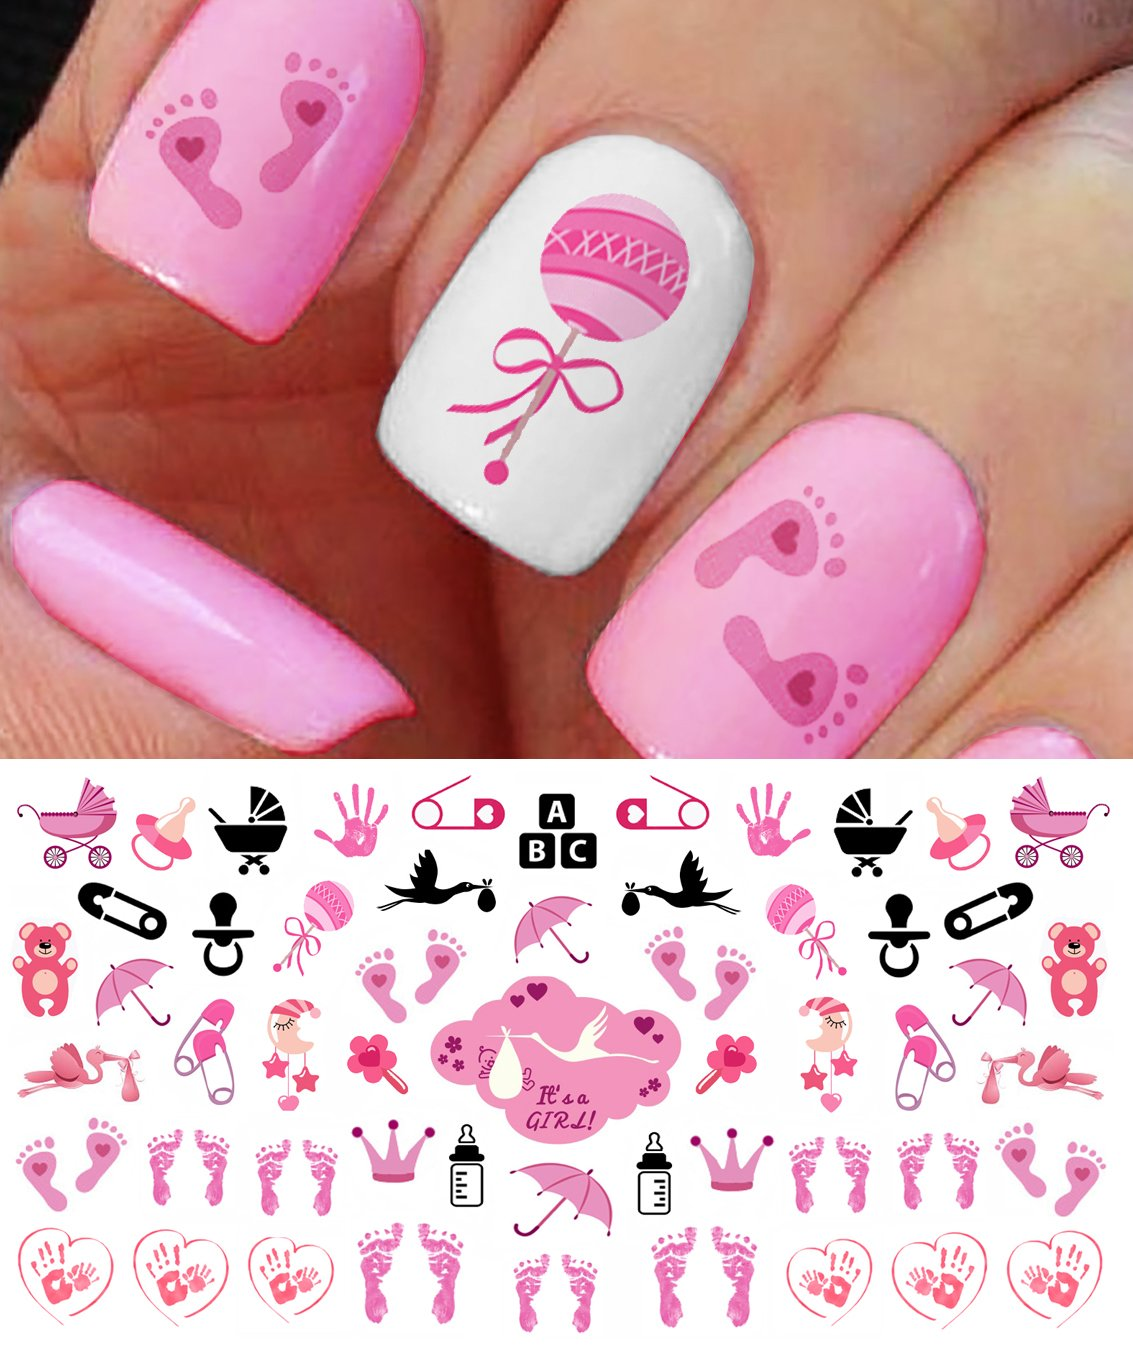 Nail Art Decals - Footprints, Strollers & More! Great Baby Shower Gift!:  Beauty - Amazon.com: